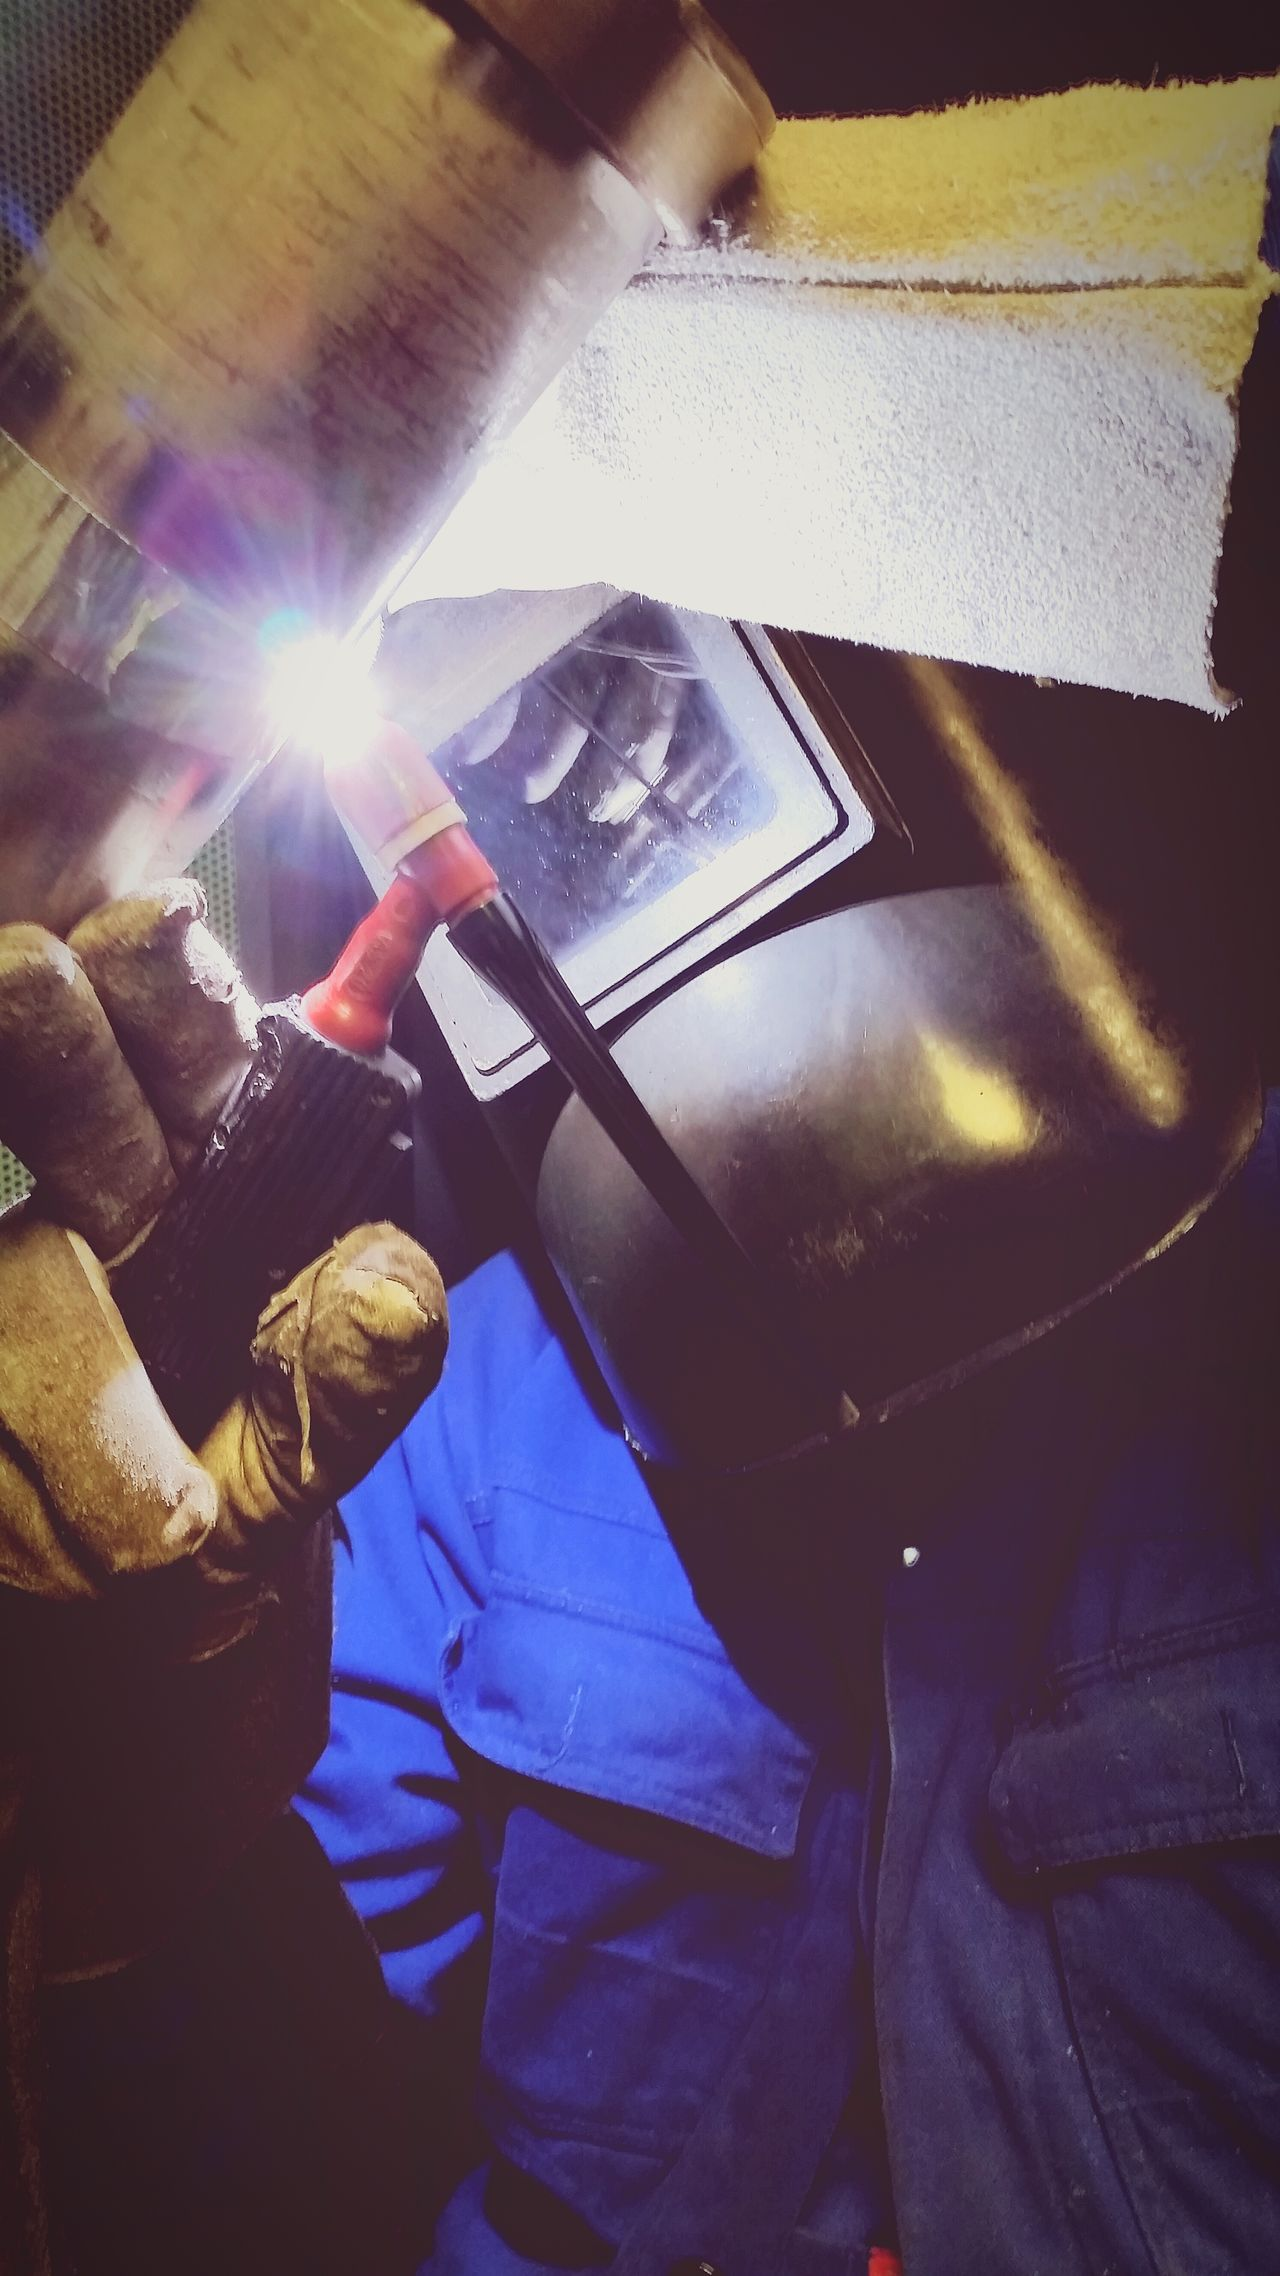 Learning the Weldingprocess and be a proud Welder to do a good Work. Weldporn